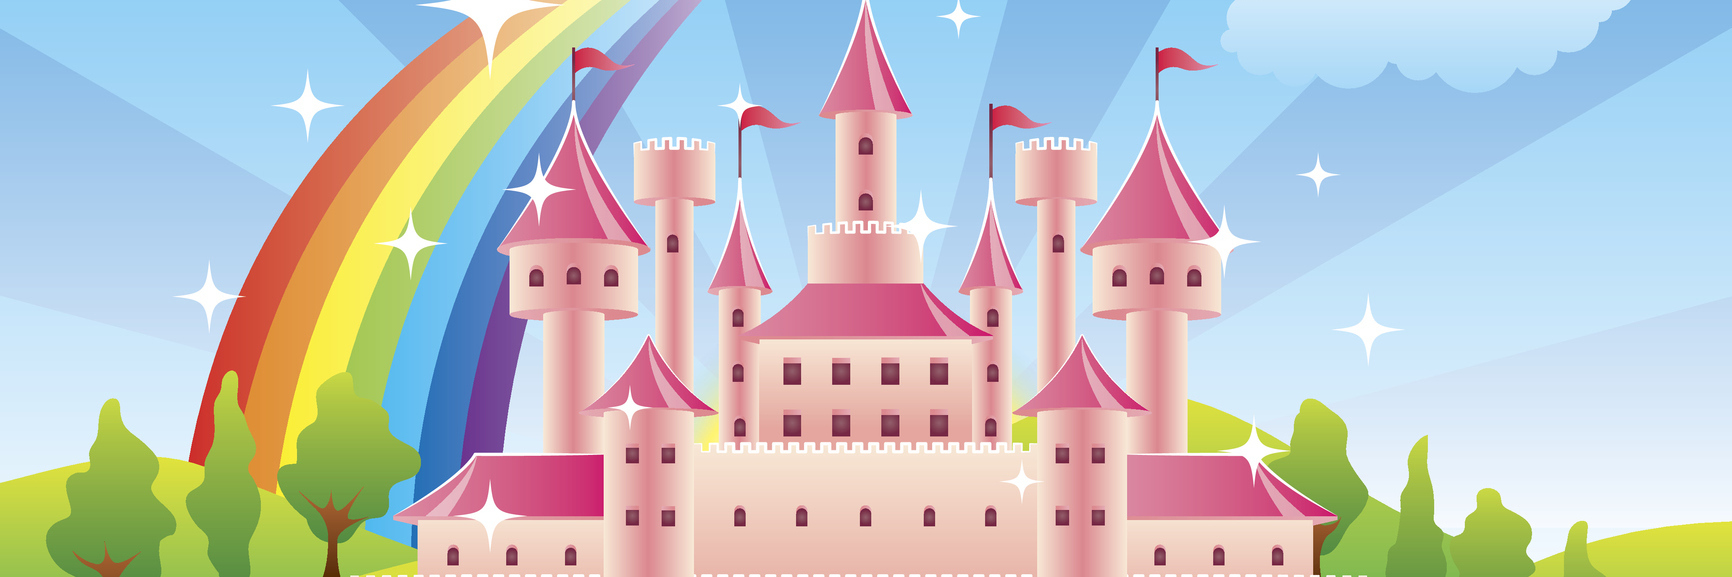 cartoon pink castle in a fairytale world